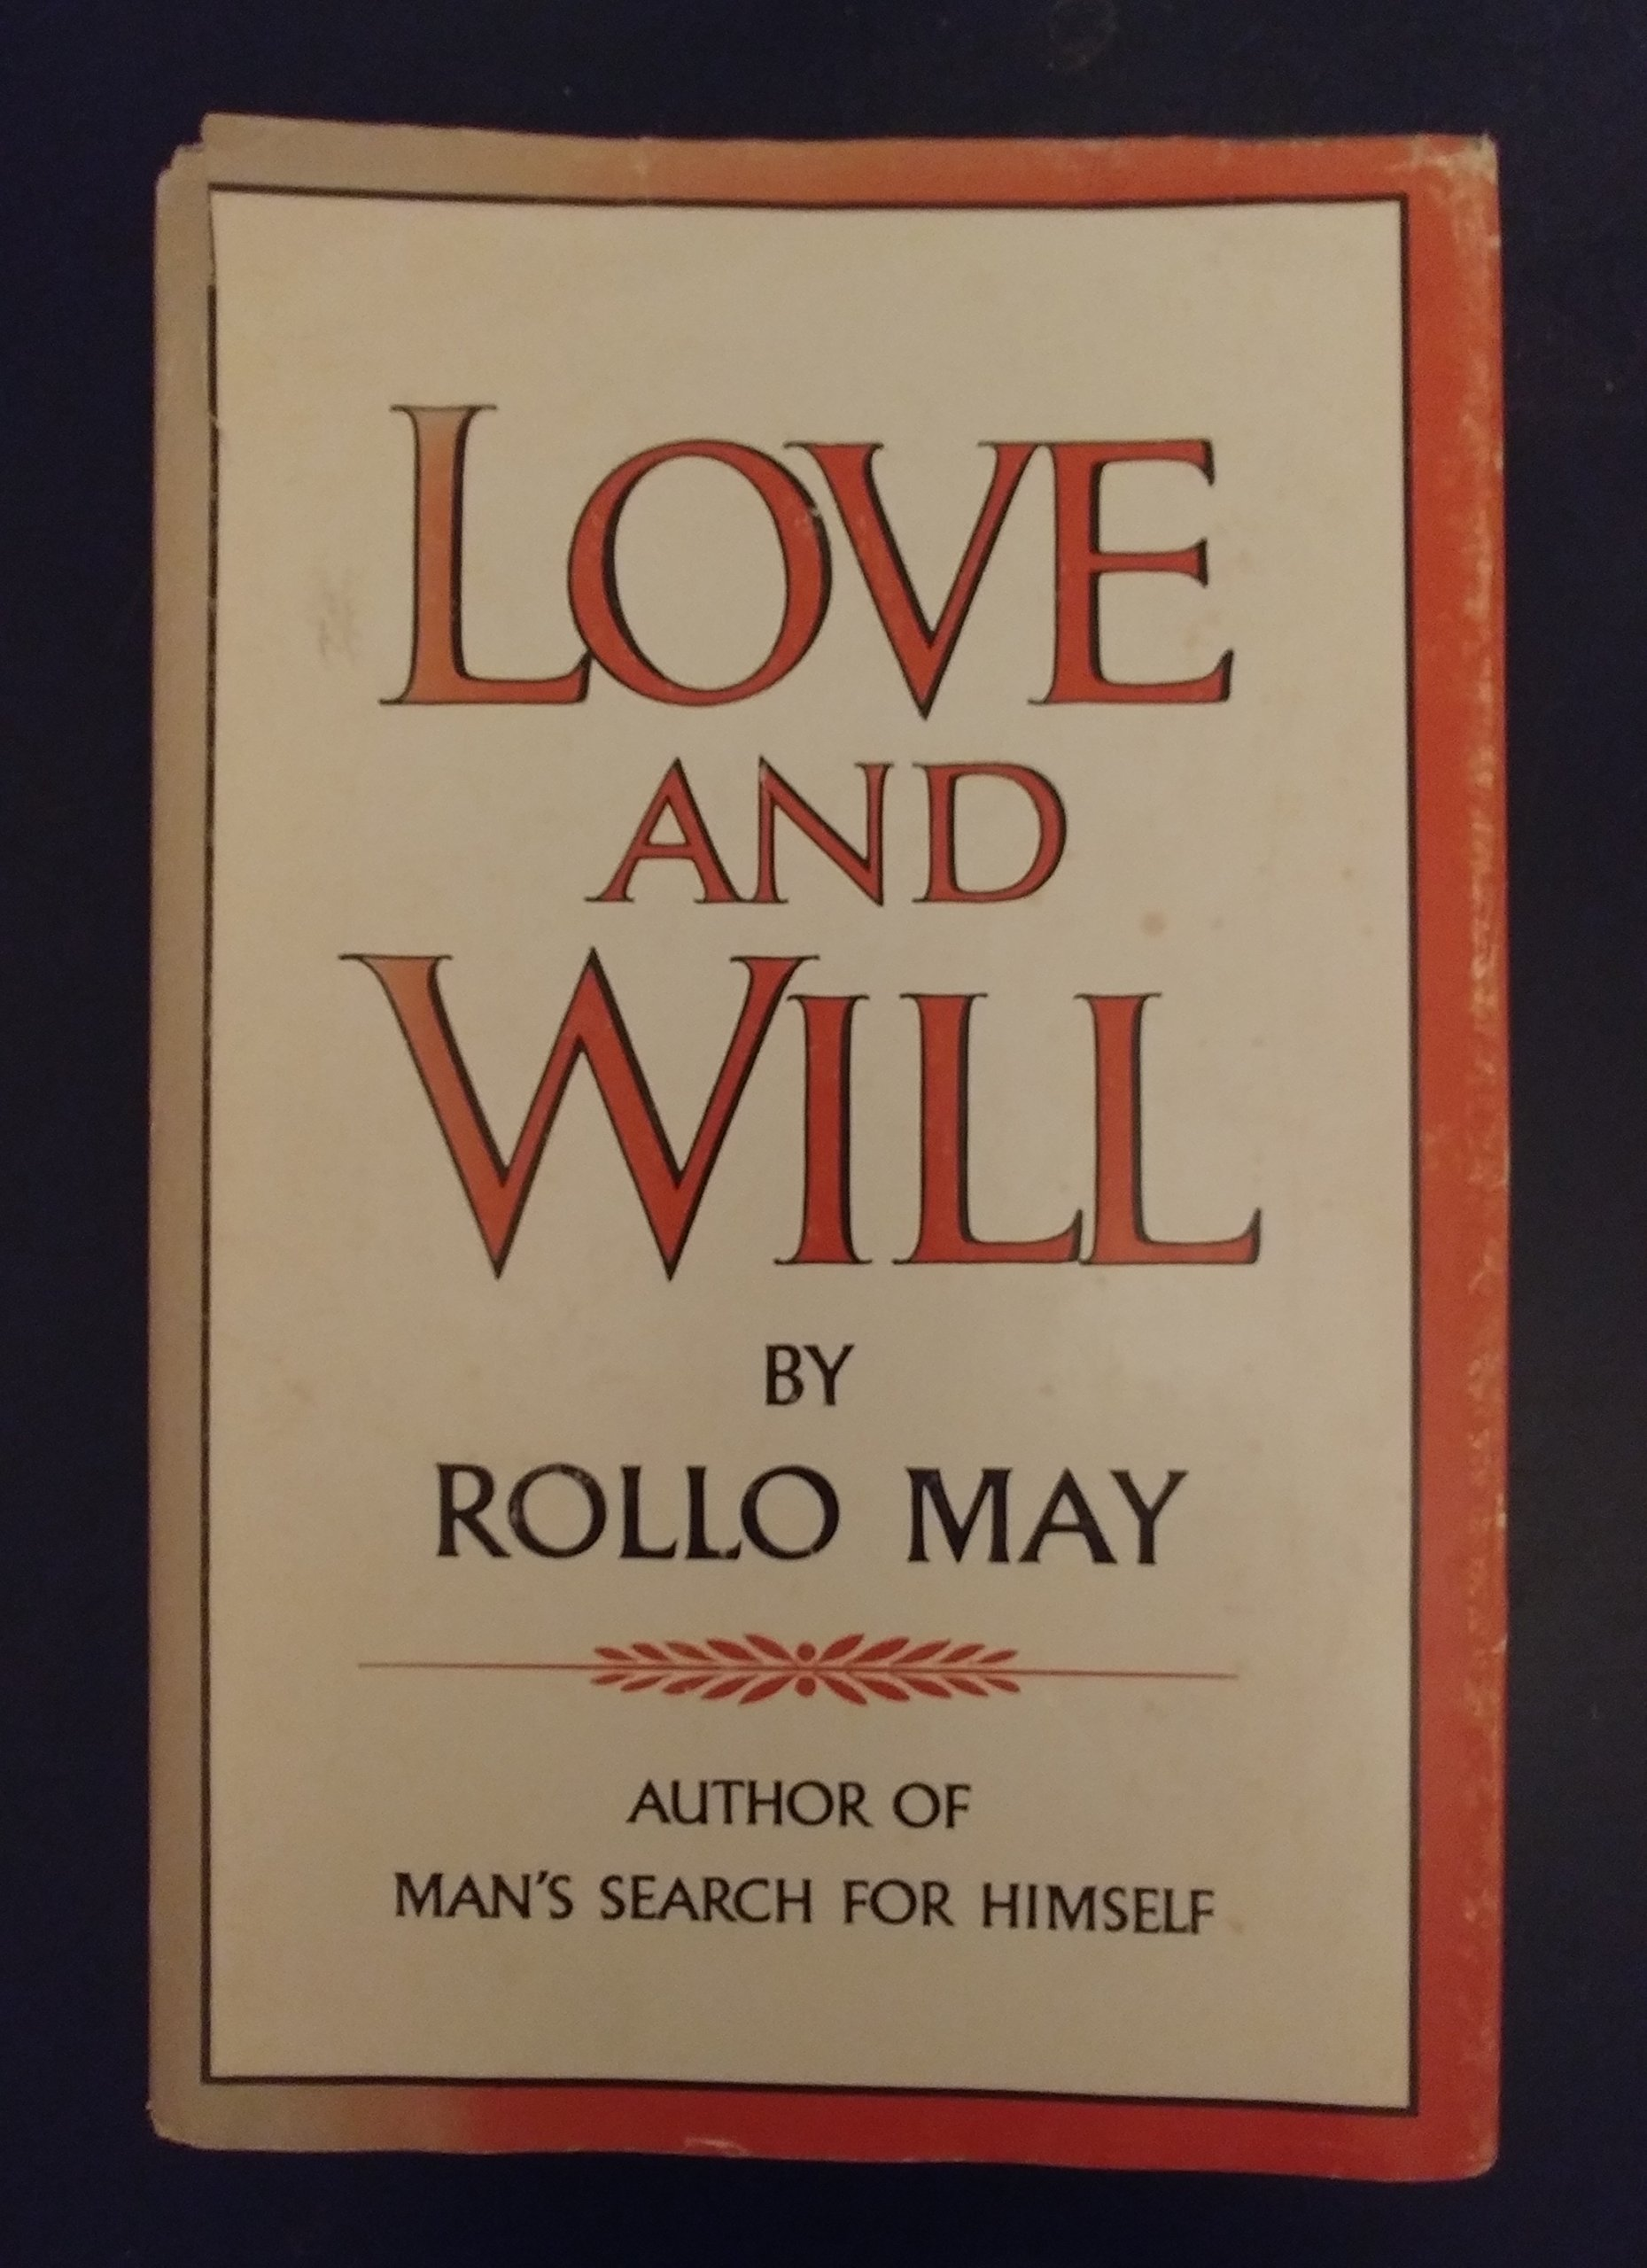 Rollo may marriage love sex marriage